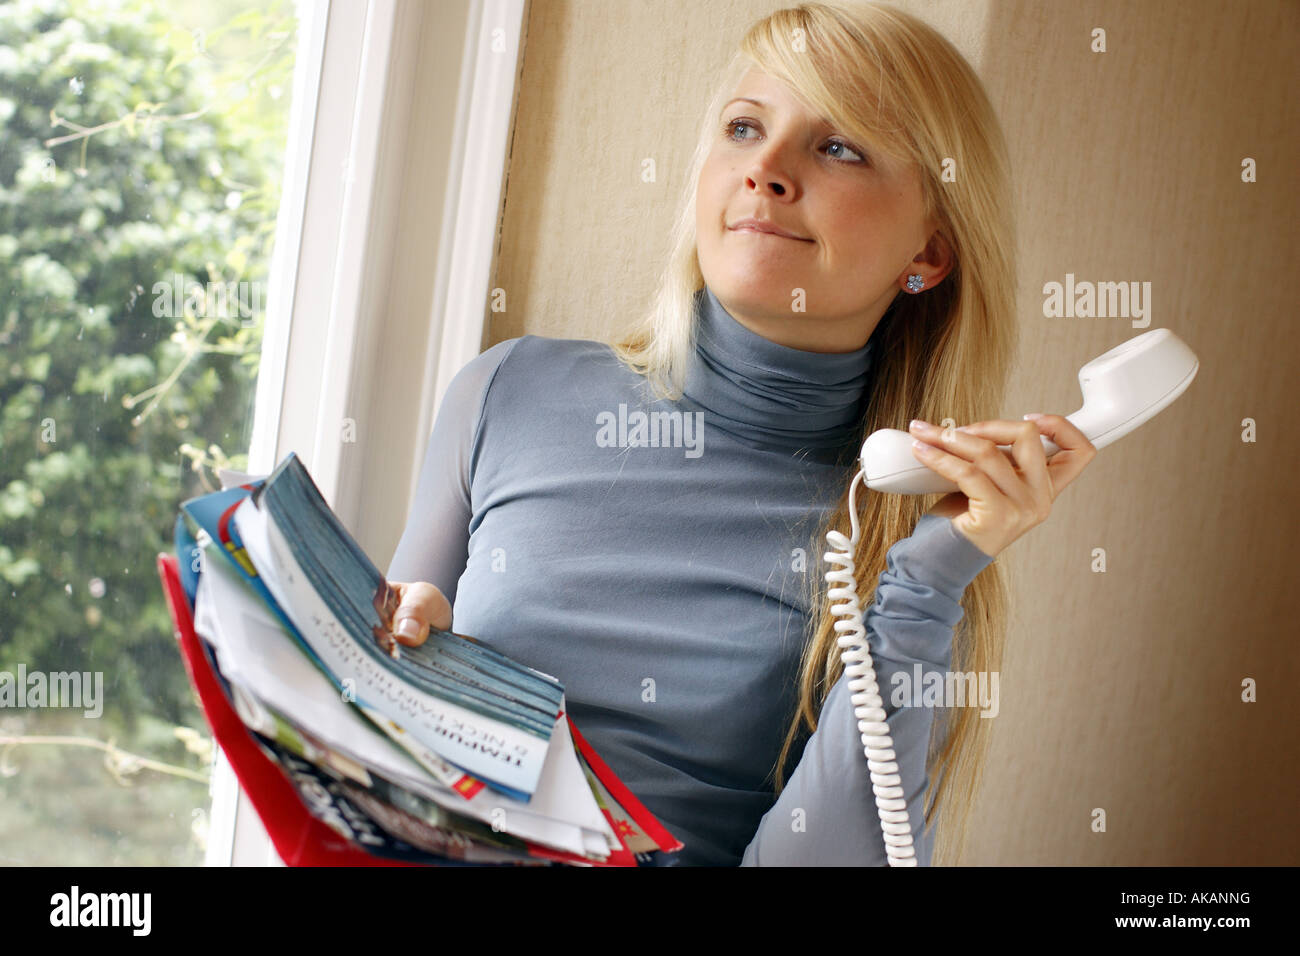 woman on the telephone making enquiries - Stock Image